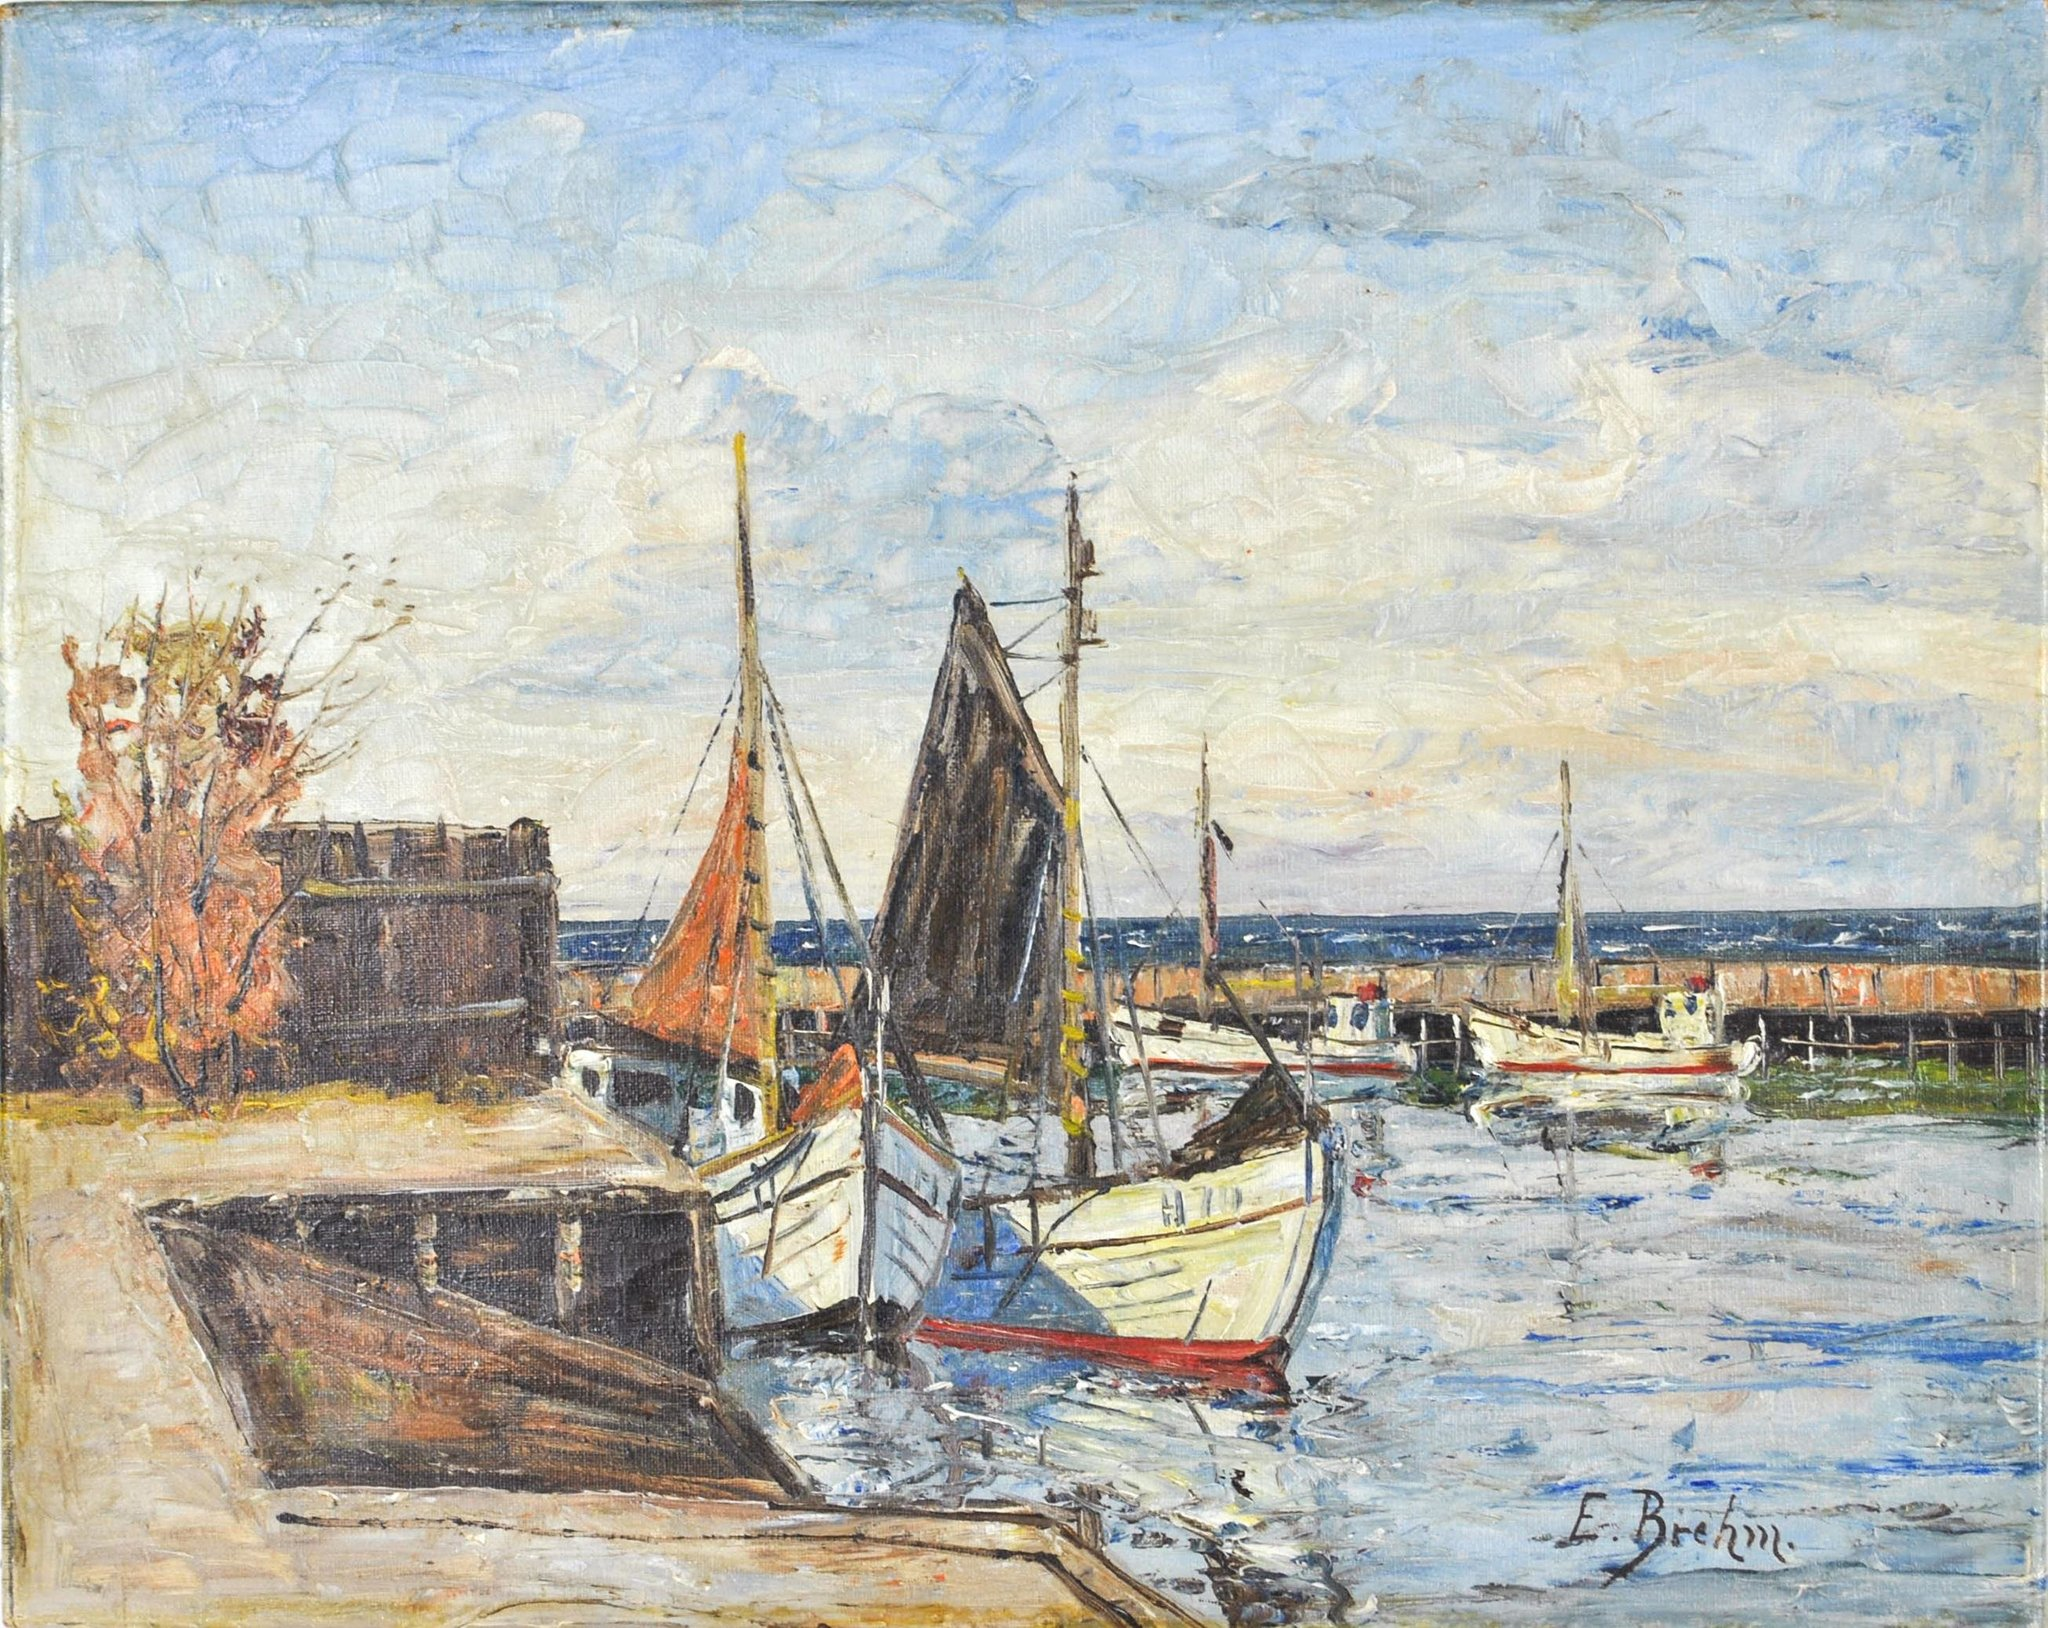 Harbor Scene Fishing Boats Oil Painting by E. Brehm 19th Century ...